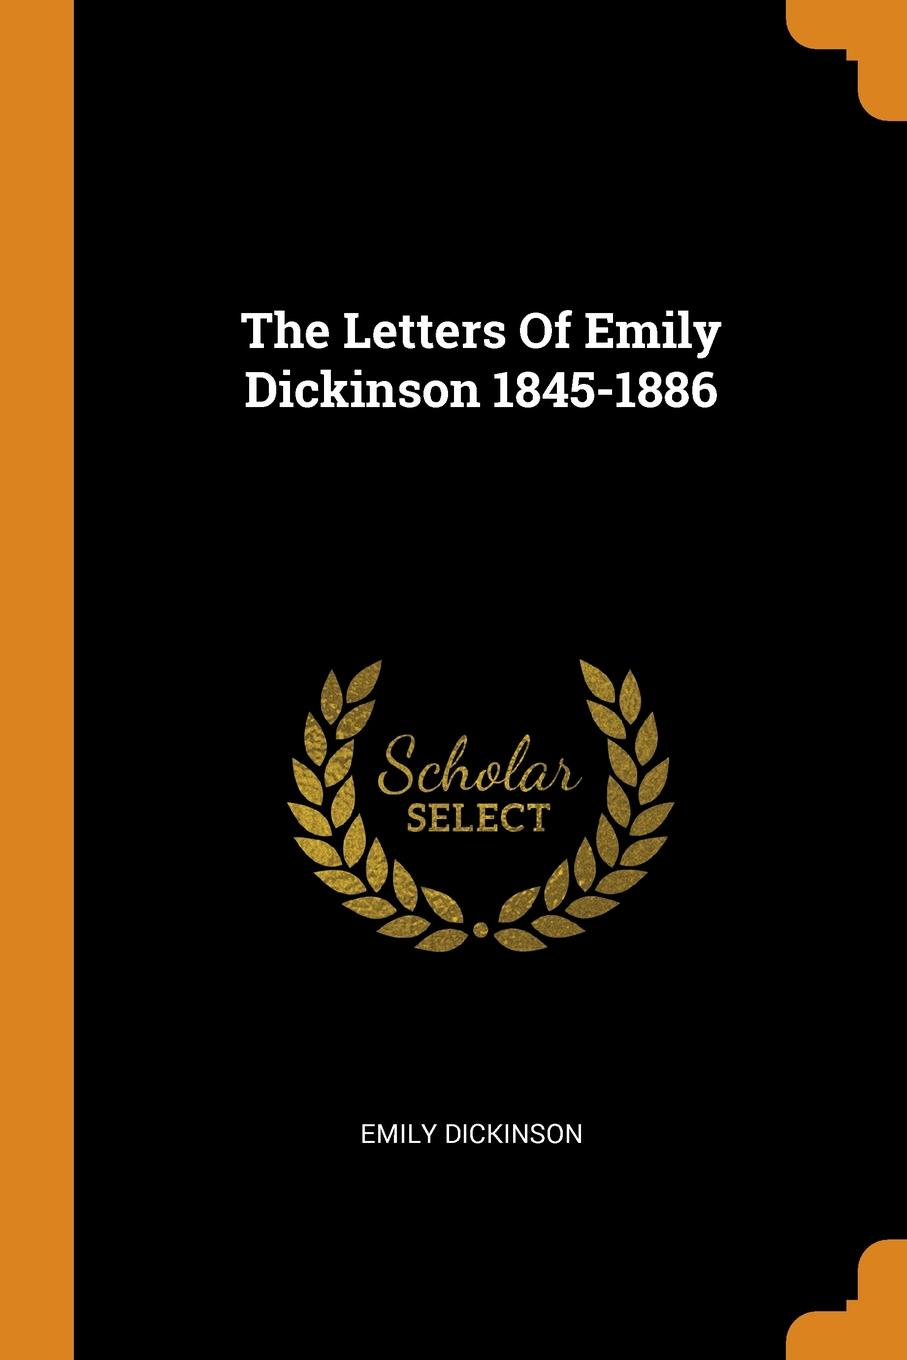 Emily Dickinson The Letters Of Emily Dickinson 1845-1886